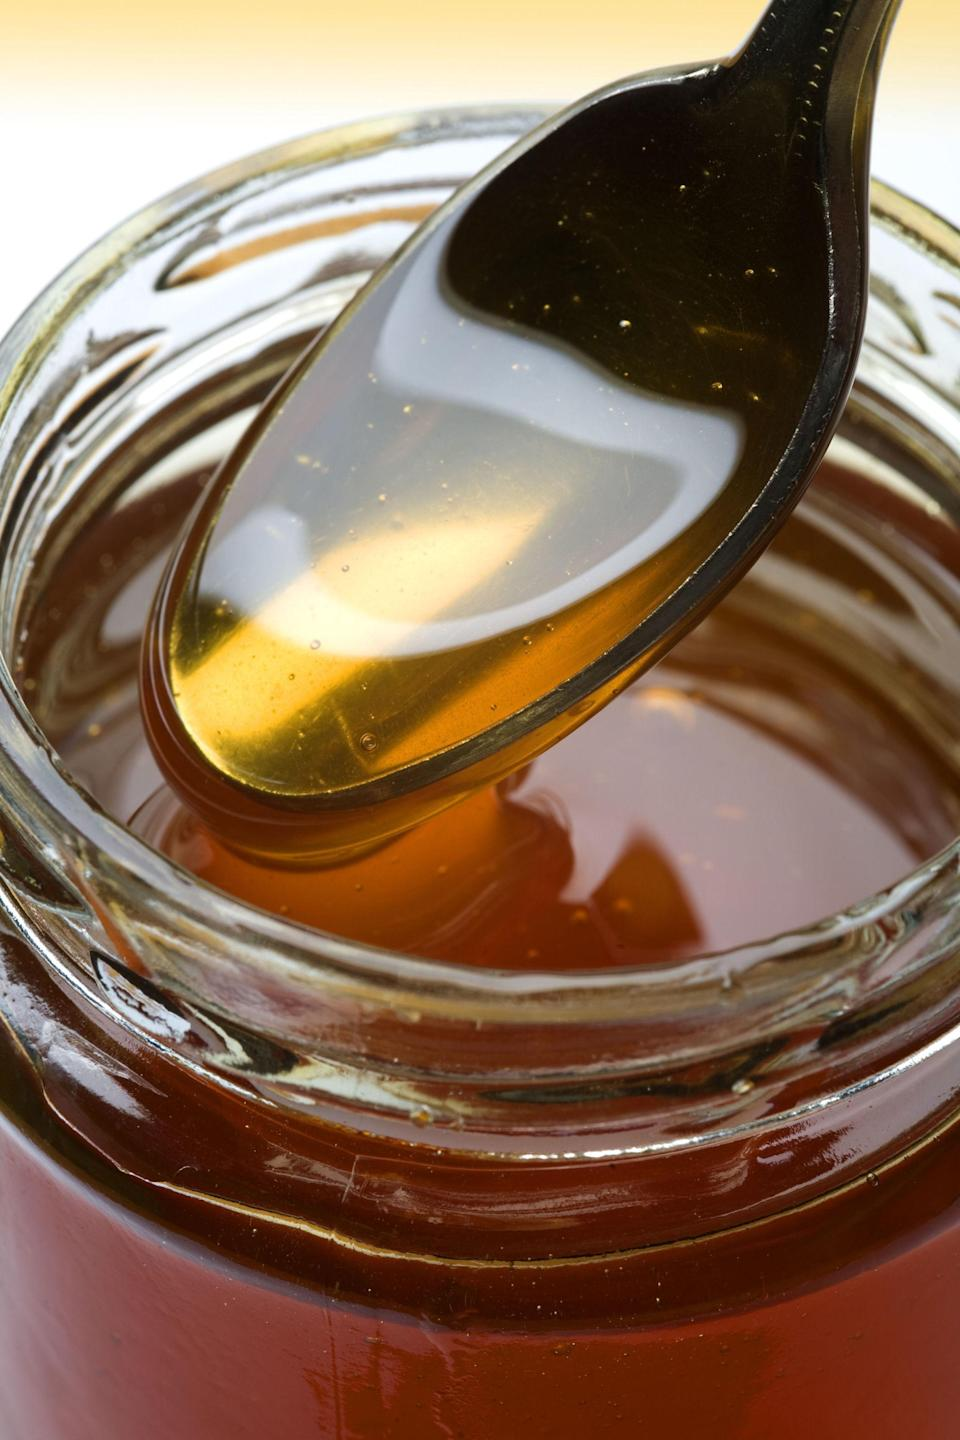 """<p>Someone should tell Mary Poppins that a just a spoonful of honey <a href=""""http://www.goodhousekeeping.com/health/wellness/a44659/sore-throat-remedies/"""" rel=""""nofollow noopener"""" target=""""_blank"""" data-ylk=""""slk:helps the cough go away"""" class=""""link rapid-noclick-resp"""">helps the cough go away</a>! Children with upper respiratory tract infections who drank 1.5 teaspoons of <a href=""""https://www.amazon.com/Gunters-Pure-Eucalyptus-Honey-16/dp/B0037JOICW?tag=syndication-20"""" rel=""""nofollow noopener"""" target=""""_blank"""" data-ylk=""""slk:eucalyptus"""" class=""""link rapid-noclick-resp"""">eucalyptus</a>, <a href=""""https://www.amazon.com/Orange-Blossom-Honey-16oz-Natural/dp/B004CGC86M?tag=syndication-20"""" rel=""""nofollow noopener"""" target=""""_blank"""" data-ylk=""""slk:citrus"""" class=""""link rapid-noclick-resp"""">citrus</a> or labiatae honey 30 minutes before bedtime saw more cough relief and slept better than sick kids who received a placebo, says a<a href=""""https://urldefense.proofpoint.com/v2/url?u=http-3A__pediatrics.aappublications.org_content_early_2012_08_01_peds.2011-2D3075&d=CwMFaQ&c=B73tqXN8Ec0ocRmZHMCntw&r=pKF3hEpYBHDBlkffNwzhI_SBeXsVofUEEAZPeTW6XQE&m=a8tXtM2RXESpB_fDsKA6VDlbnL3x2-dDZeUv3rwfMe4&s=cCsVAnLRIbx94SnqeWjRfTx2FrFBepNrRas1hBMVlDw&e="""" rel=""""nofollow noopener"""" target=""""_blank"""" data-ylk=""""slk:2012 study"""" class=""""link rapid-noclick-resp""""> 2012 study</a> in <em>Pediatrics</em>. </p>"""